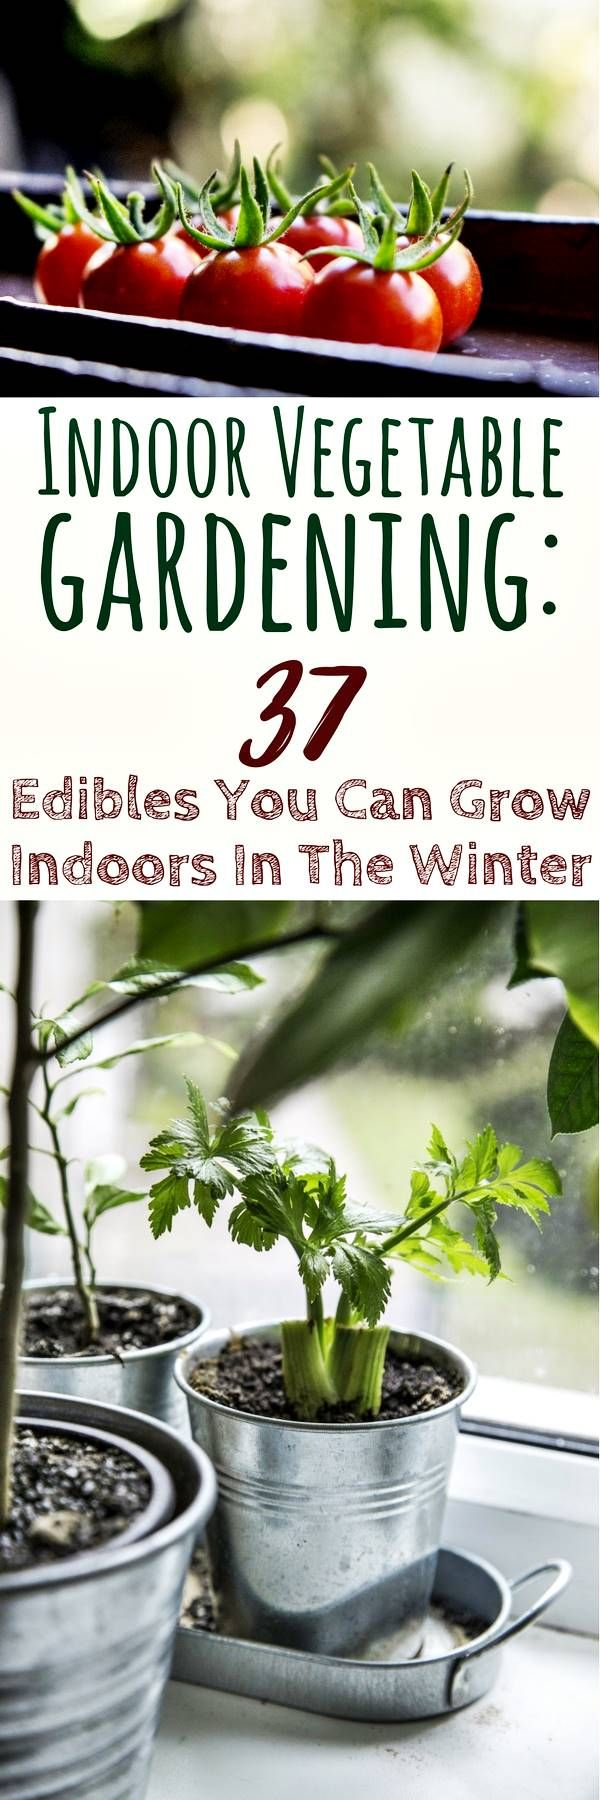 Indoor Vegetable Gardening: 37 Edibles You Can Grow Indoors In The Winter - As a prepper, one of the essential skills is for you to be able to sustain yourself and have food available to you the whole year, if and when you need it. One way of achieving this, is through an indoor vegetable garden. It doesn't take up a lot of space and, more importantly, is able to function entirely inside.